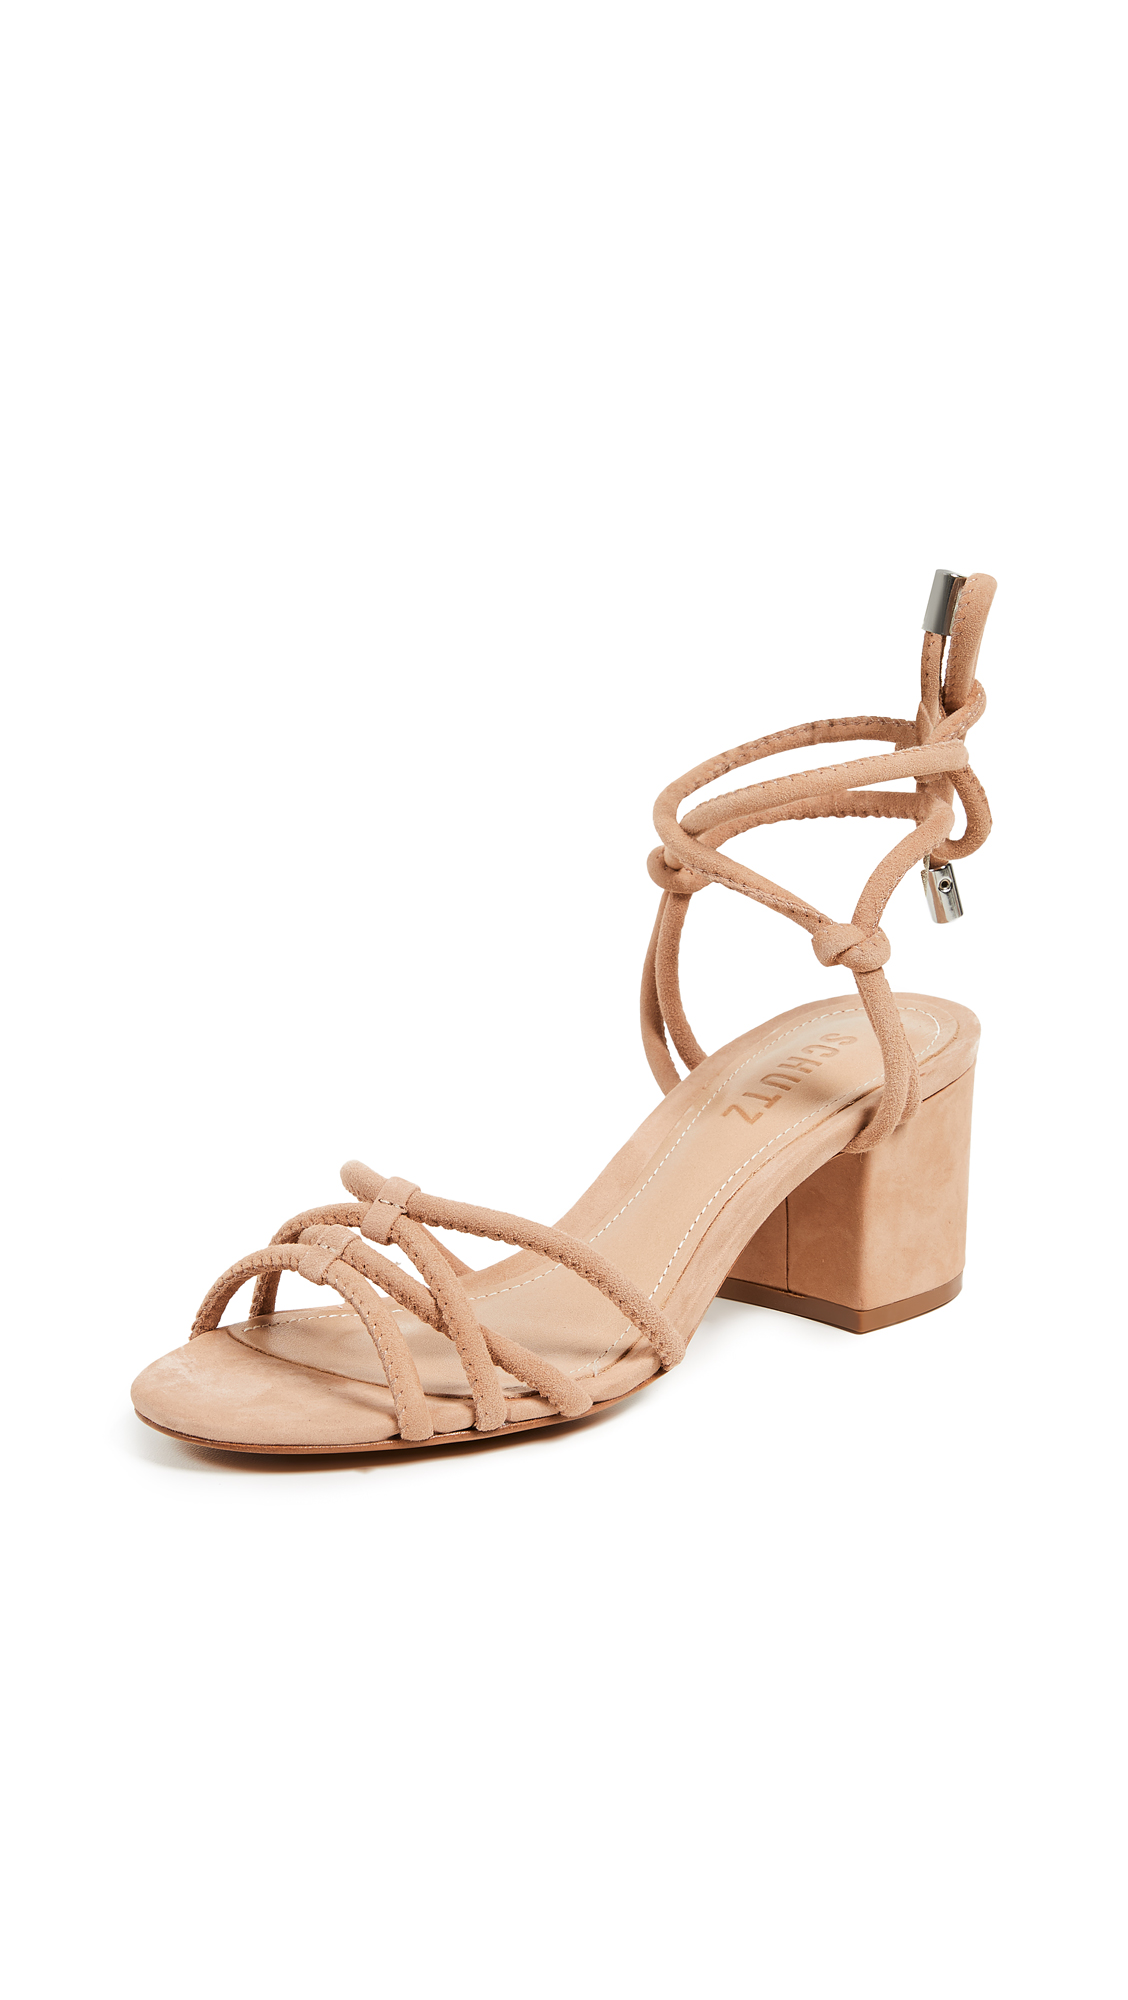 Schutz Marcella Strappy Sandals - Honey Beige